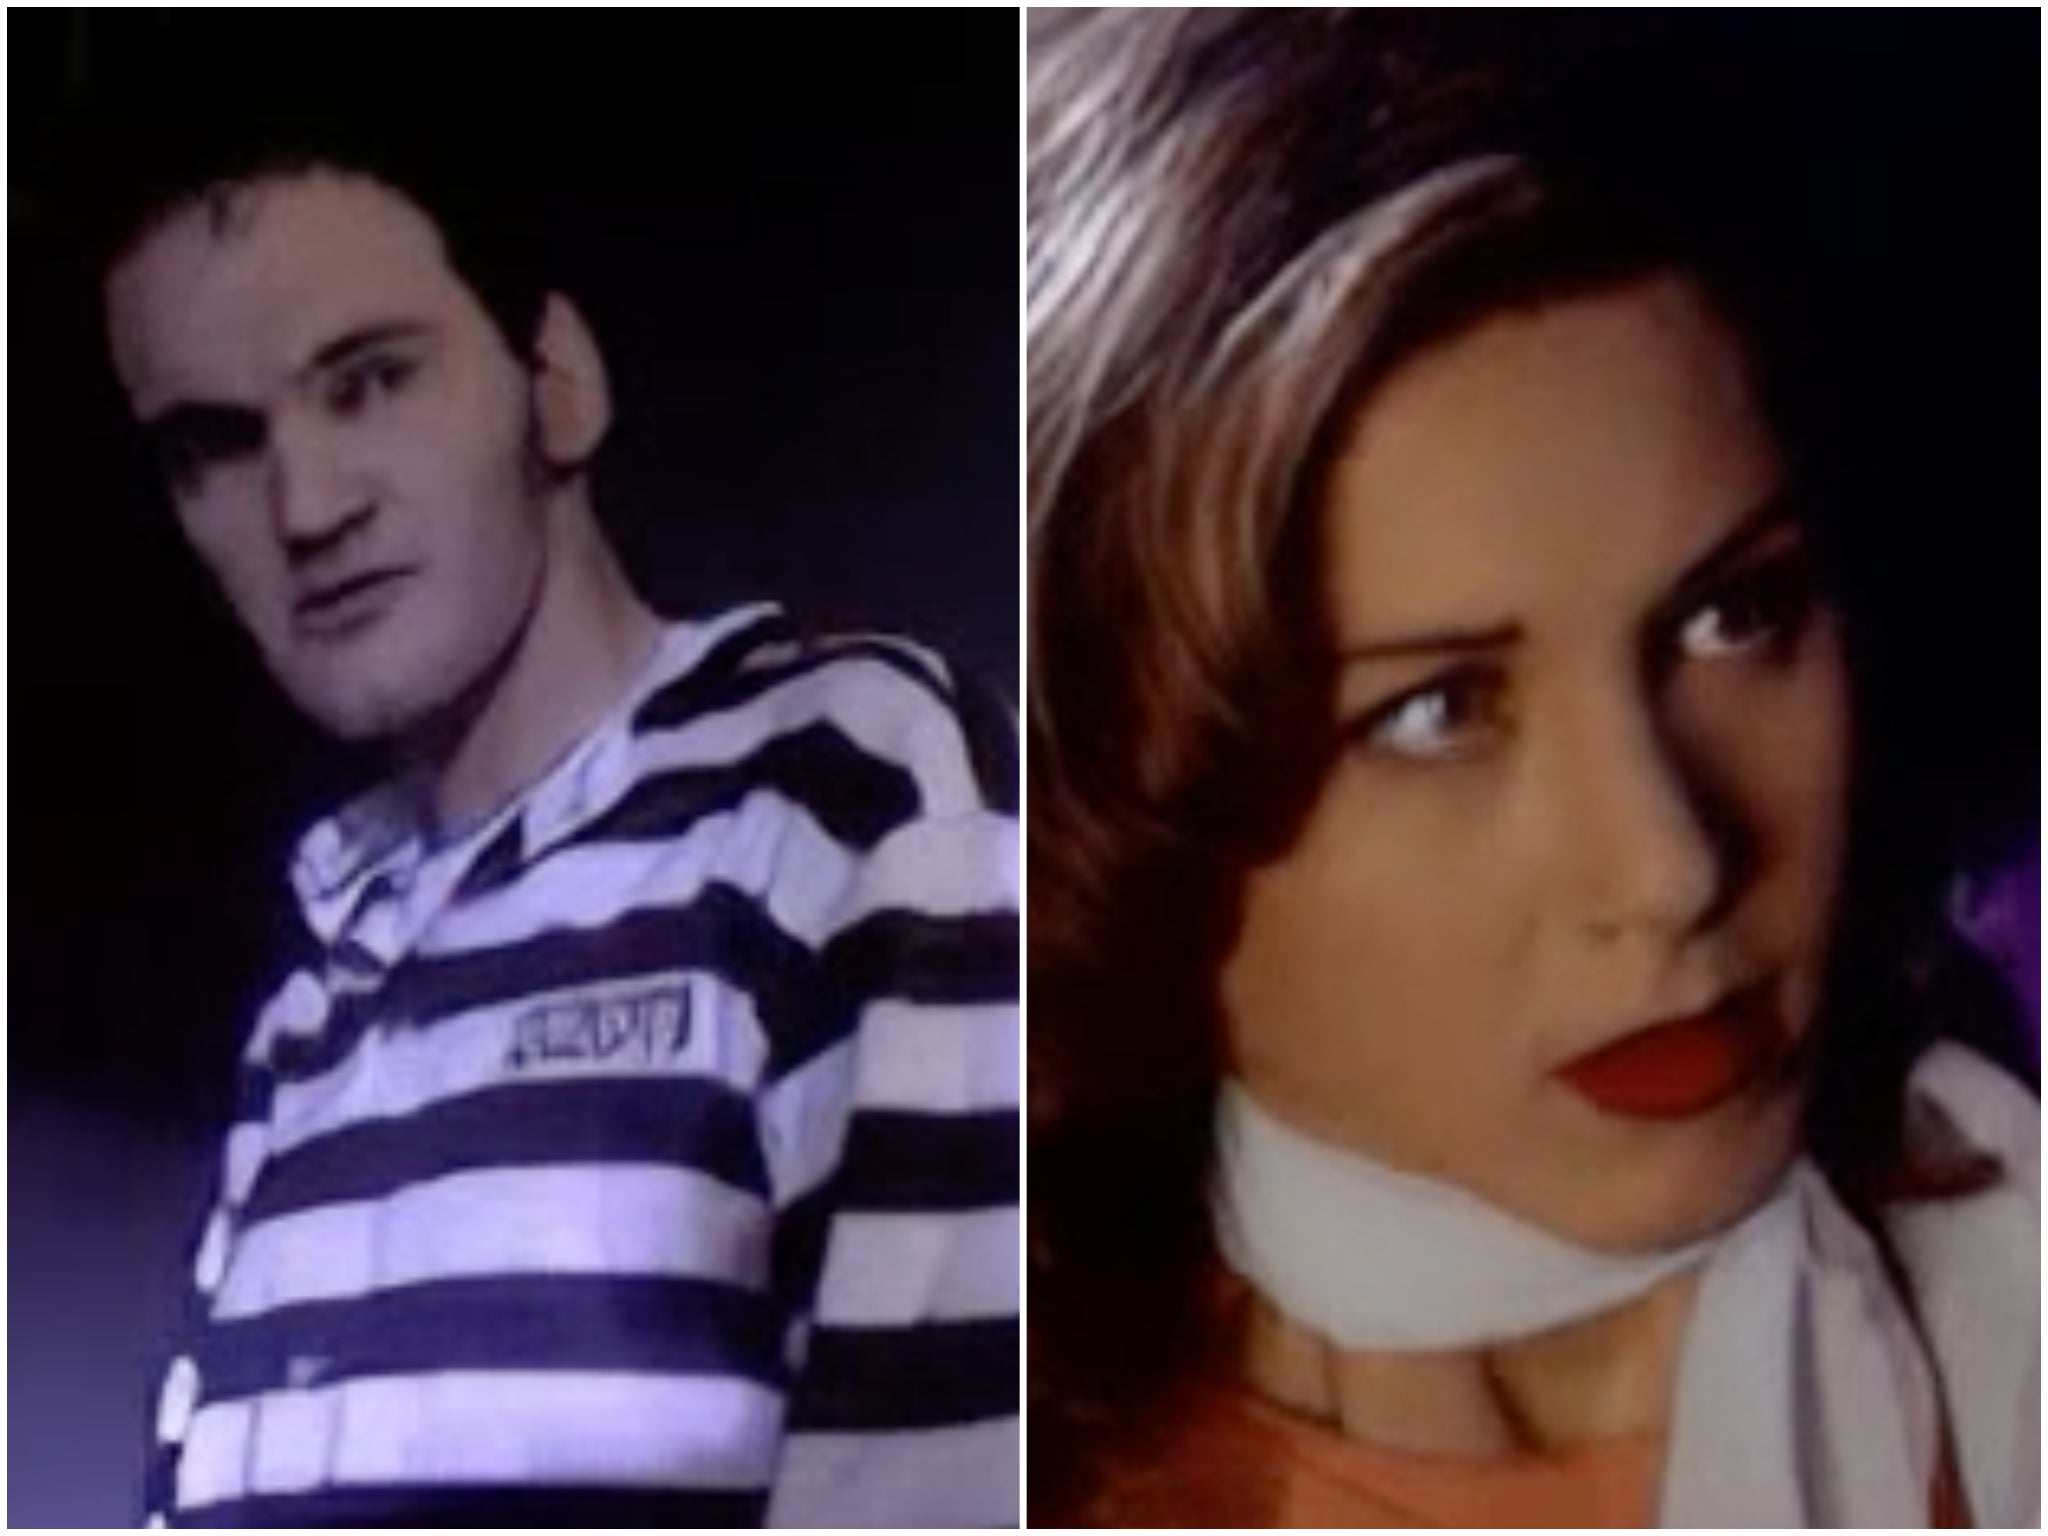 Quentin Tarantino and Jennifer Aniston's lost 1990s video game rediscovered